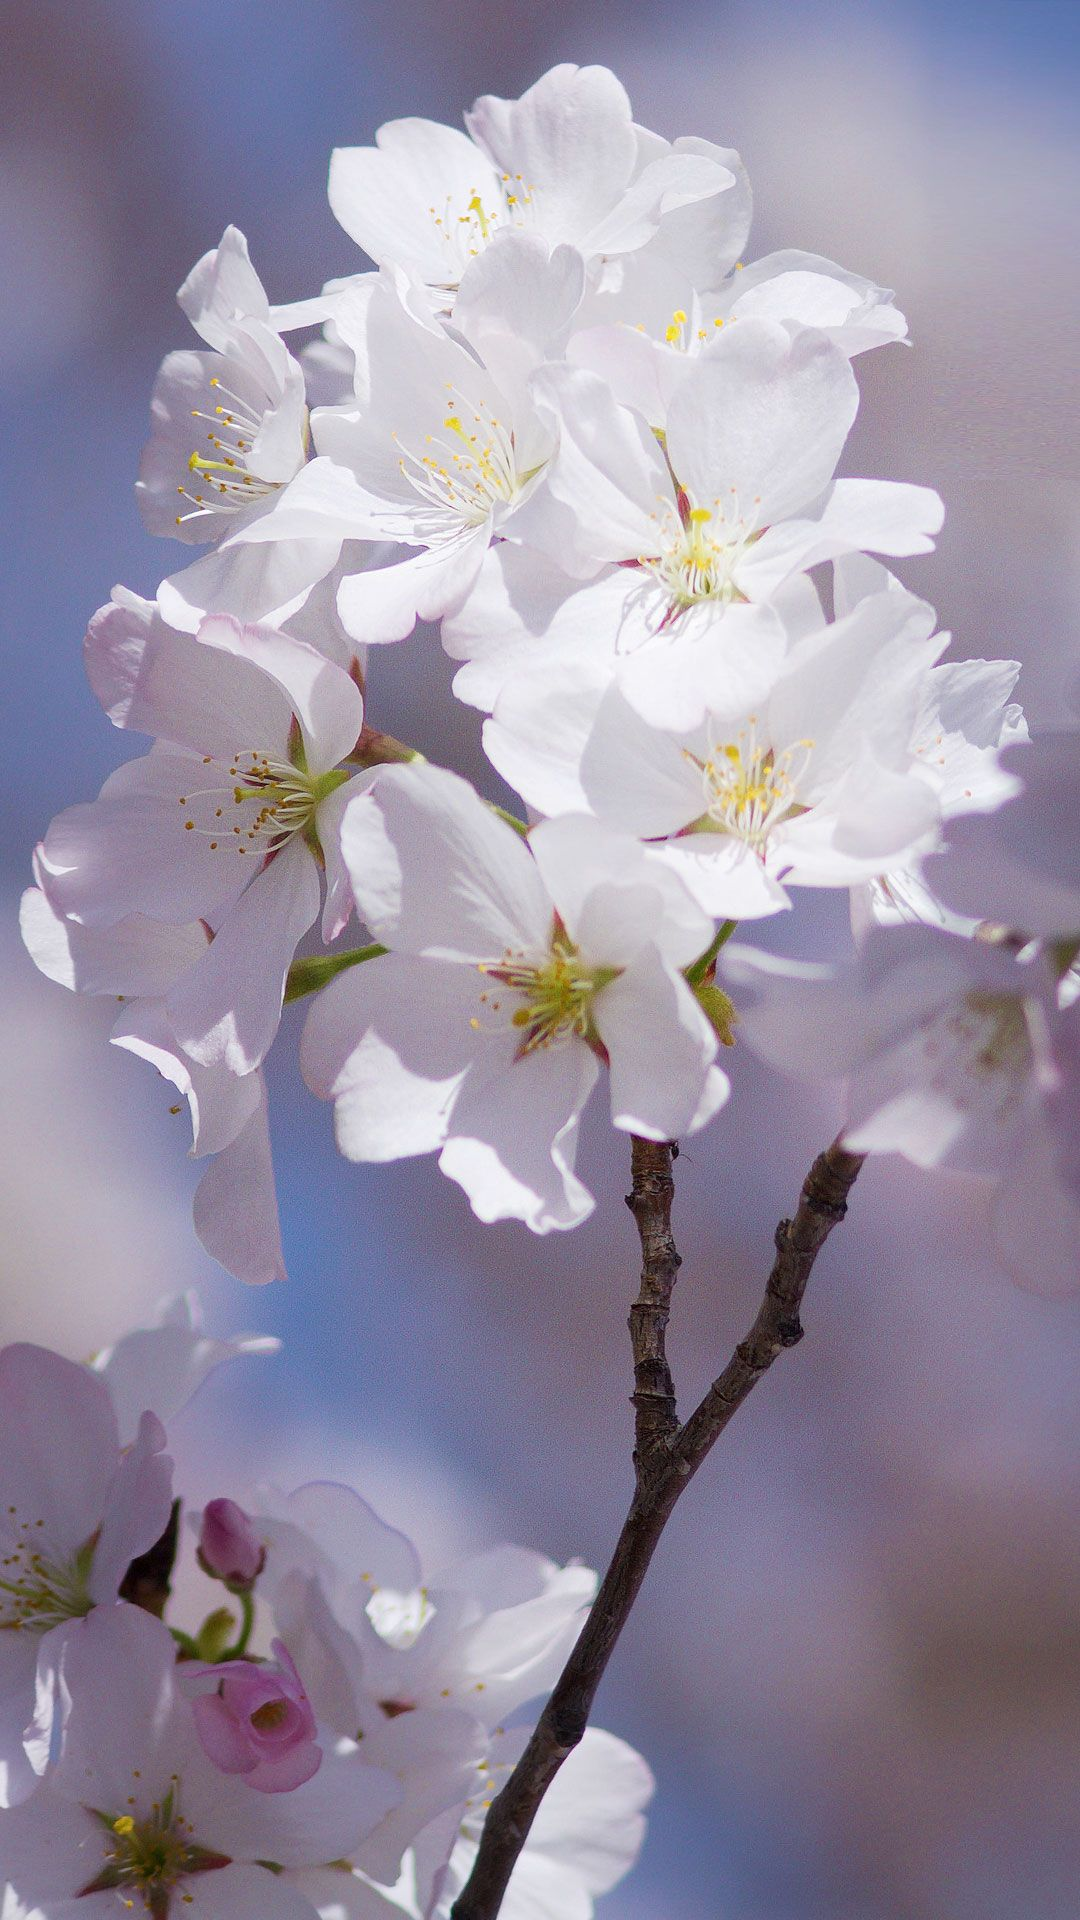 Wallpapers Cherry Blossom Free Android Cherry Blossom Wallpaper Iphone Cherry Blossoms